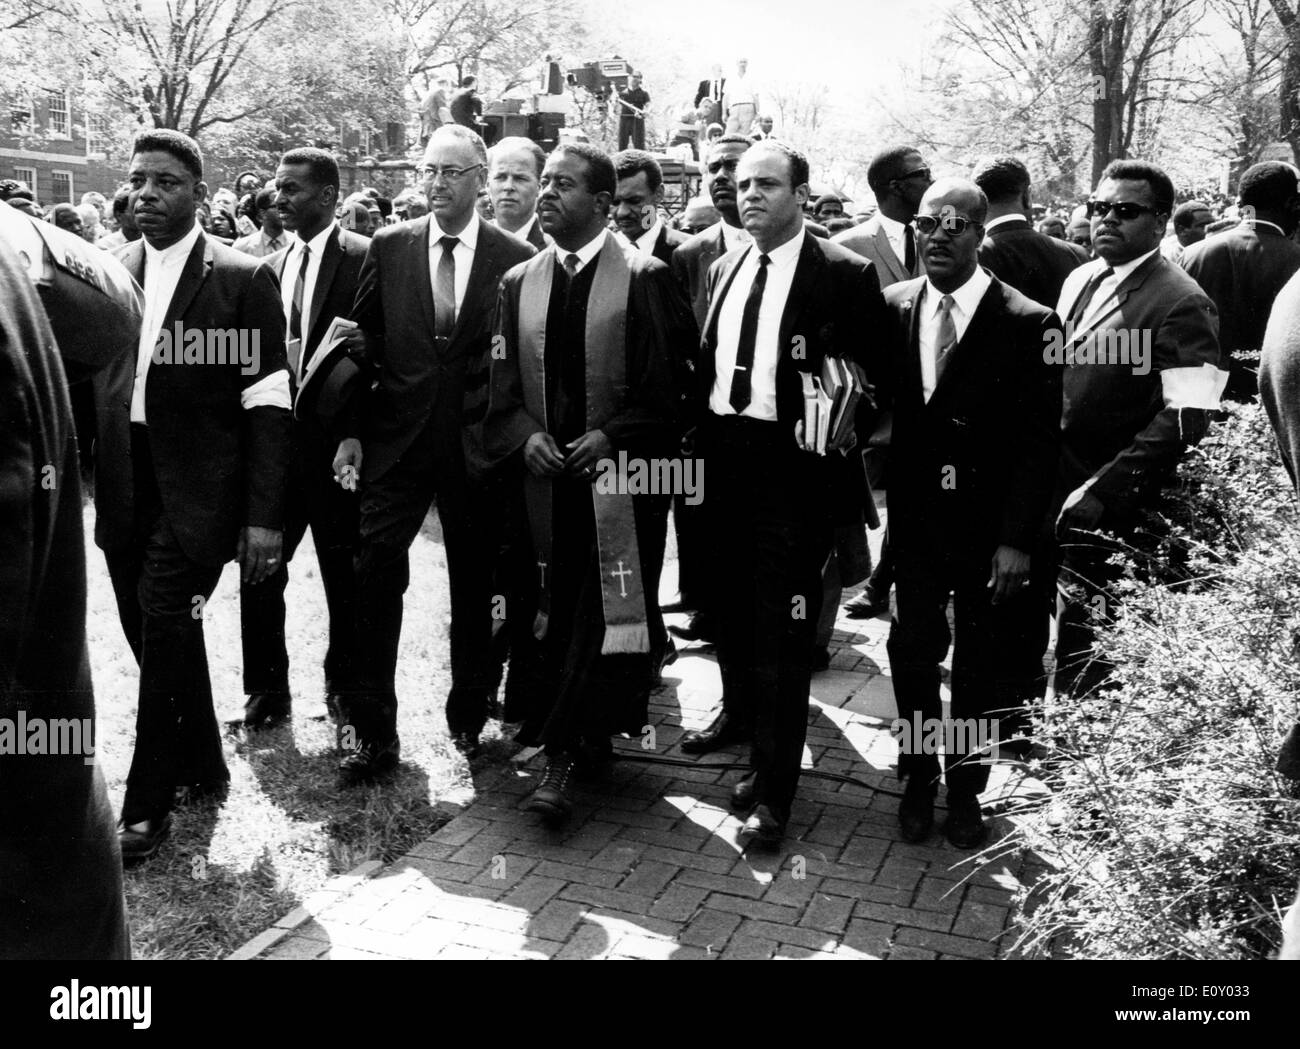 Funeral of reverend Martin Luther King Jr. Stock Photo